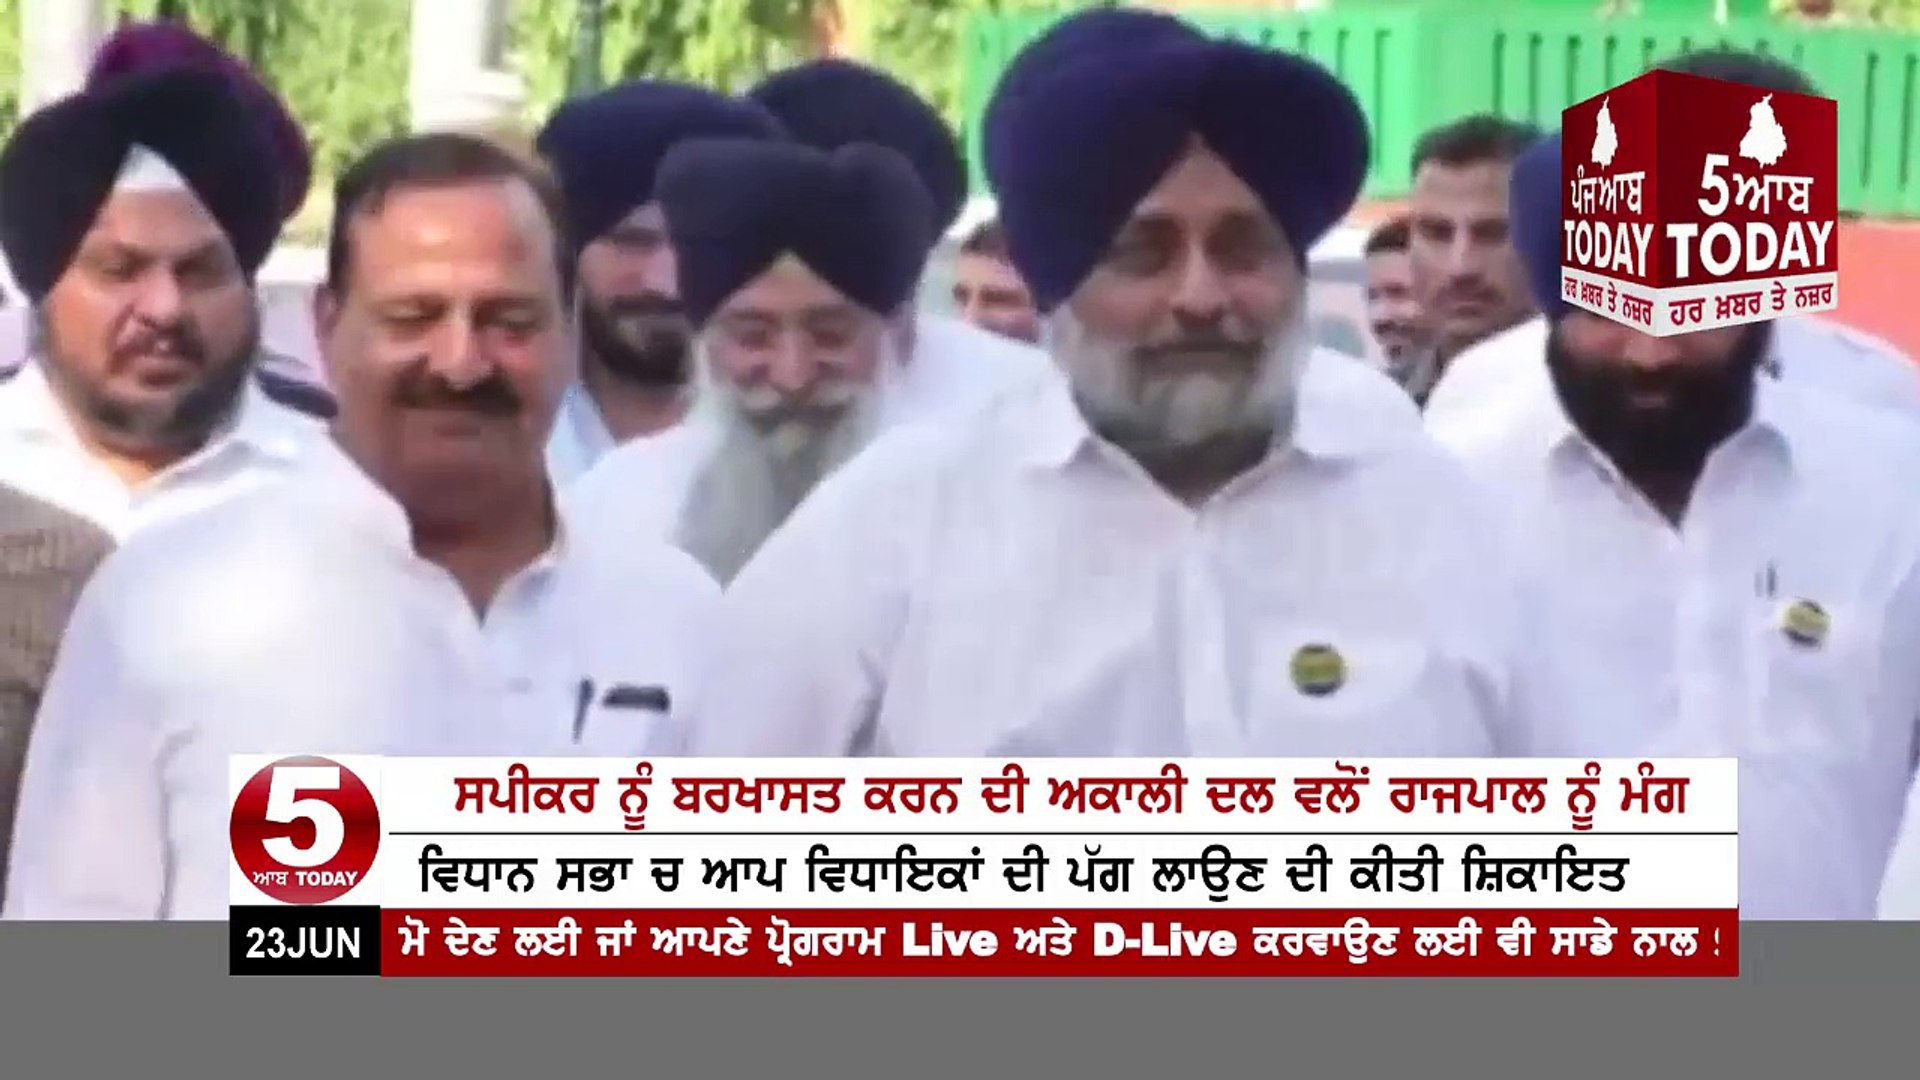 The Akali Dal complained to Governor Against Speaker Rana KP, Demand For Dismissal - YouTube